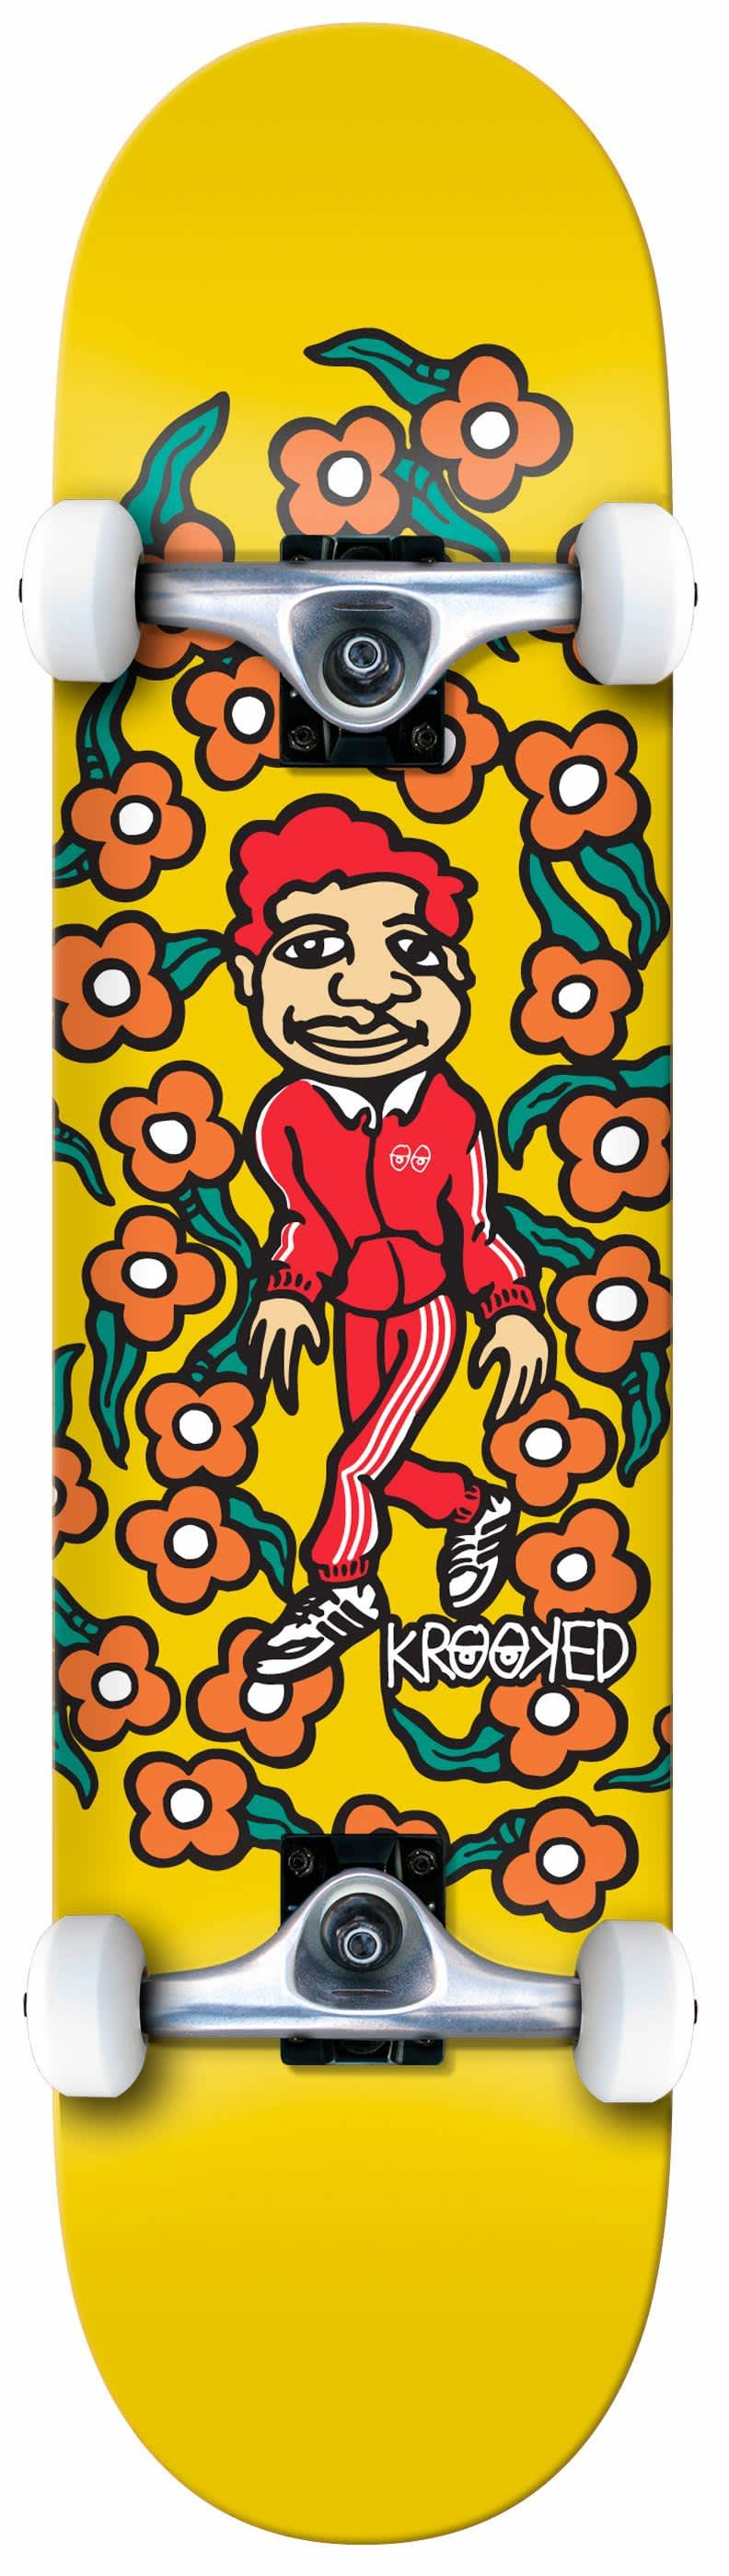 KROOKED Classic Sweatpants Complete Mini 7.3   Complete Skateboard by Krooked Skateboards 1